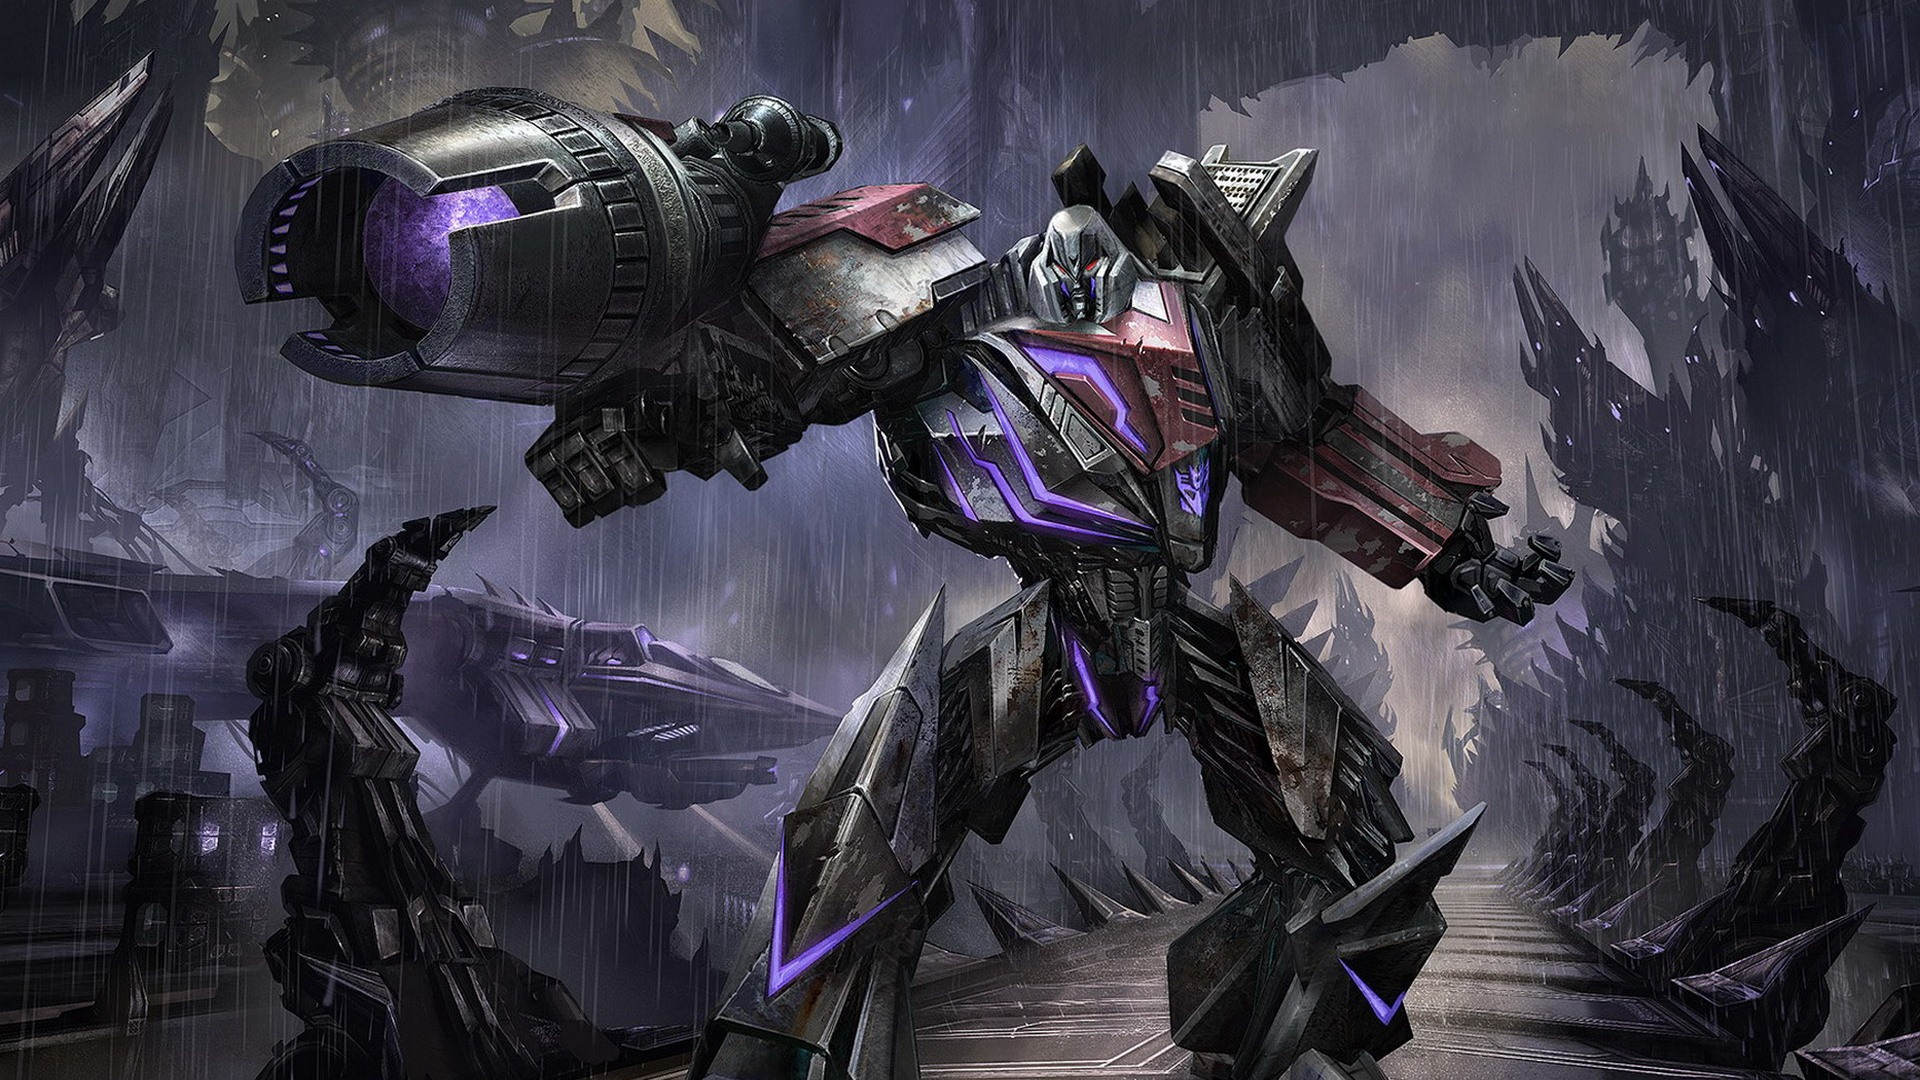 Fall Of Cybertron Wallpaper Hd Transformers Fall Of Cybertron Megatron Wallpaper